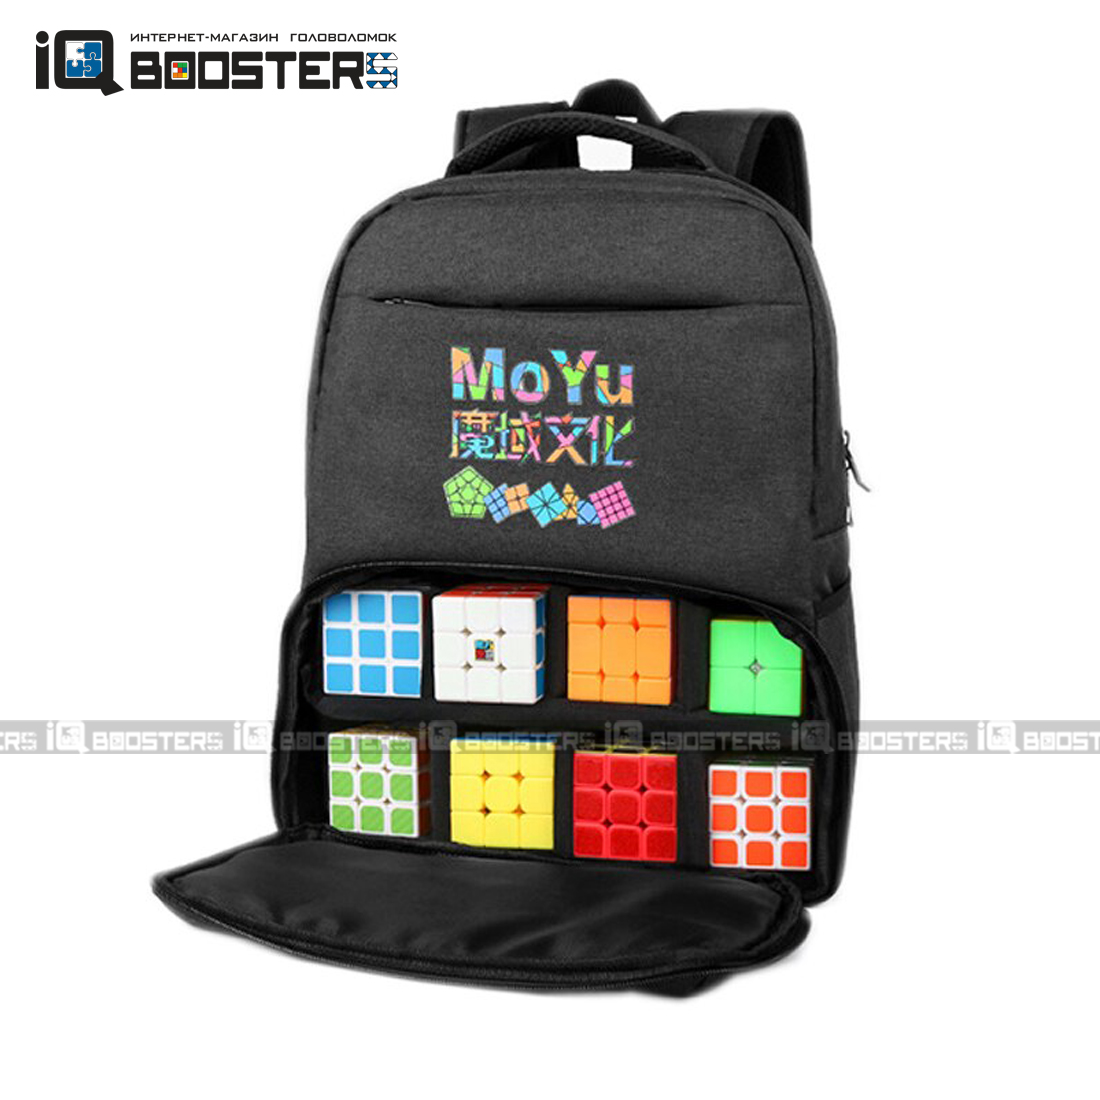 moyu_backpack_02